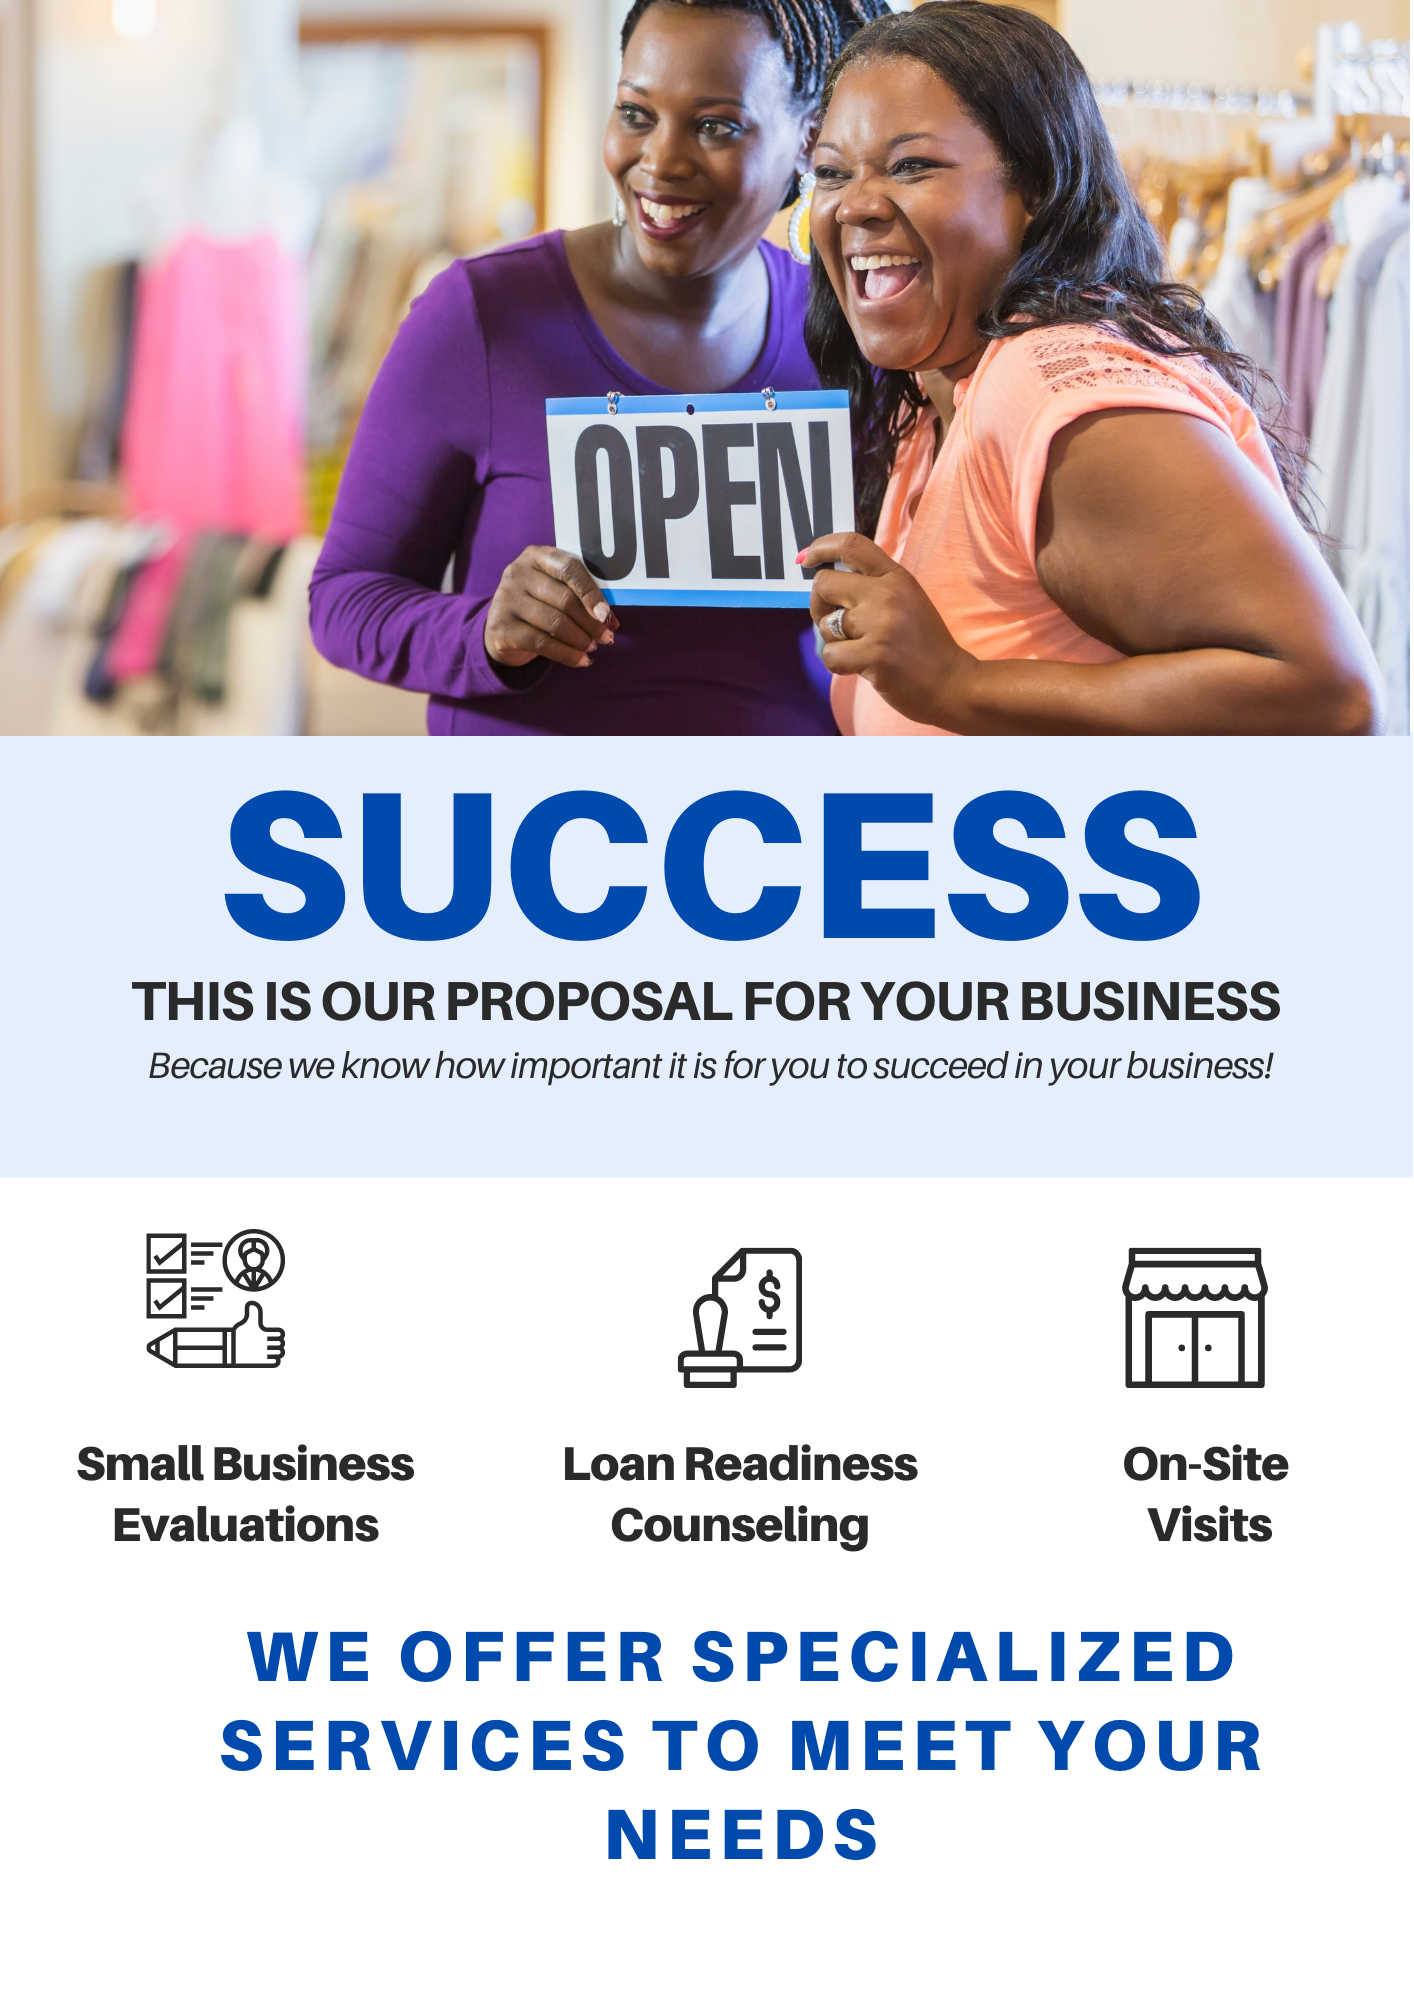 Free Individual Counseling for Small Business